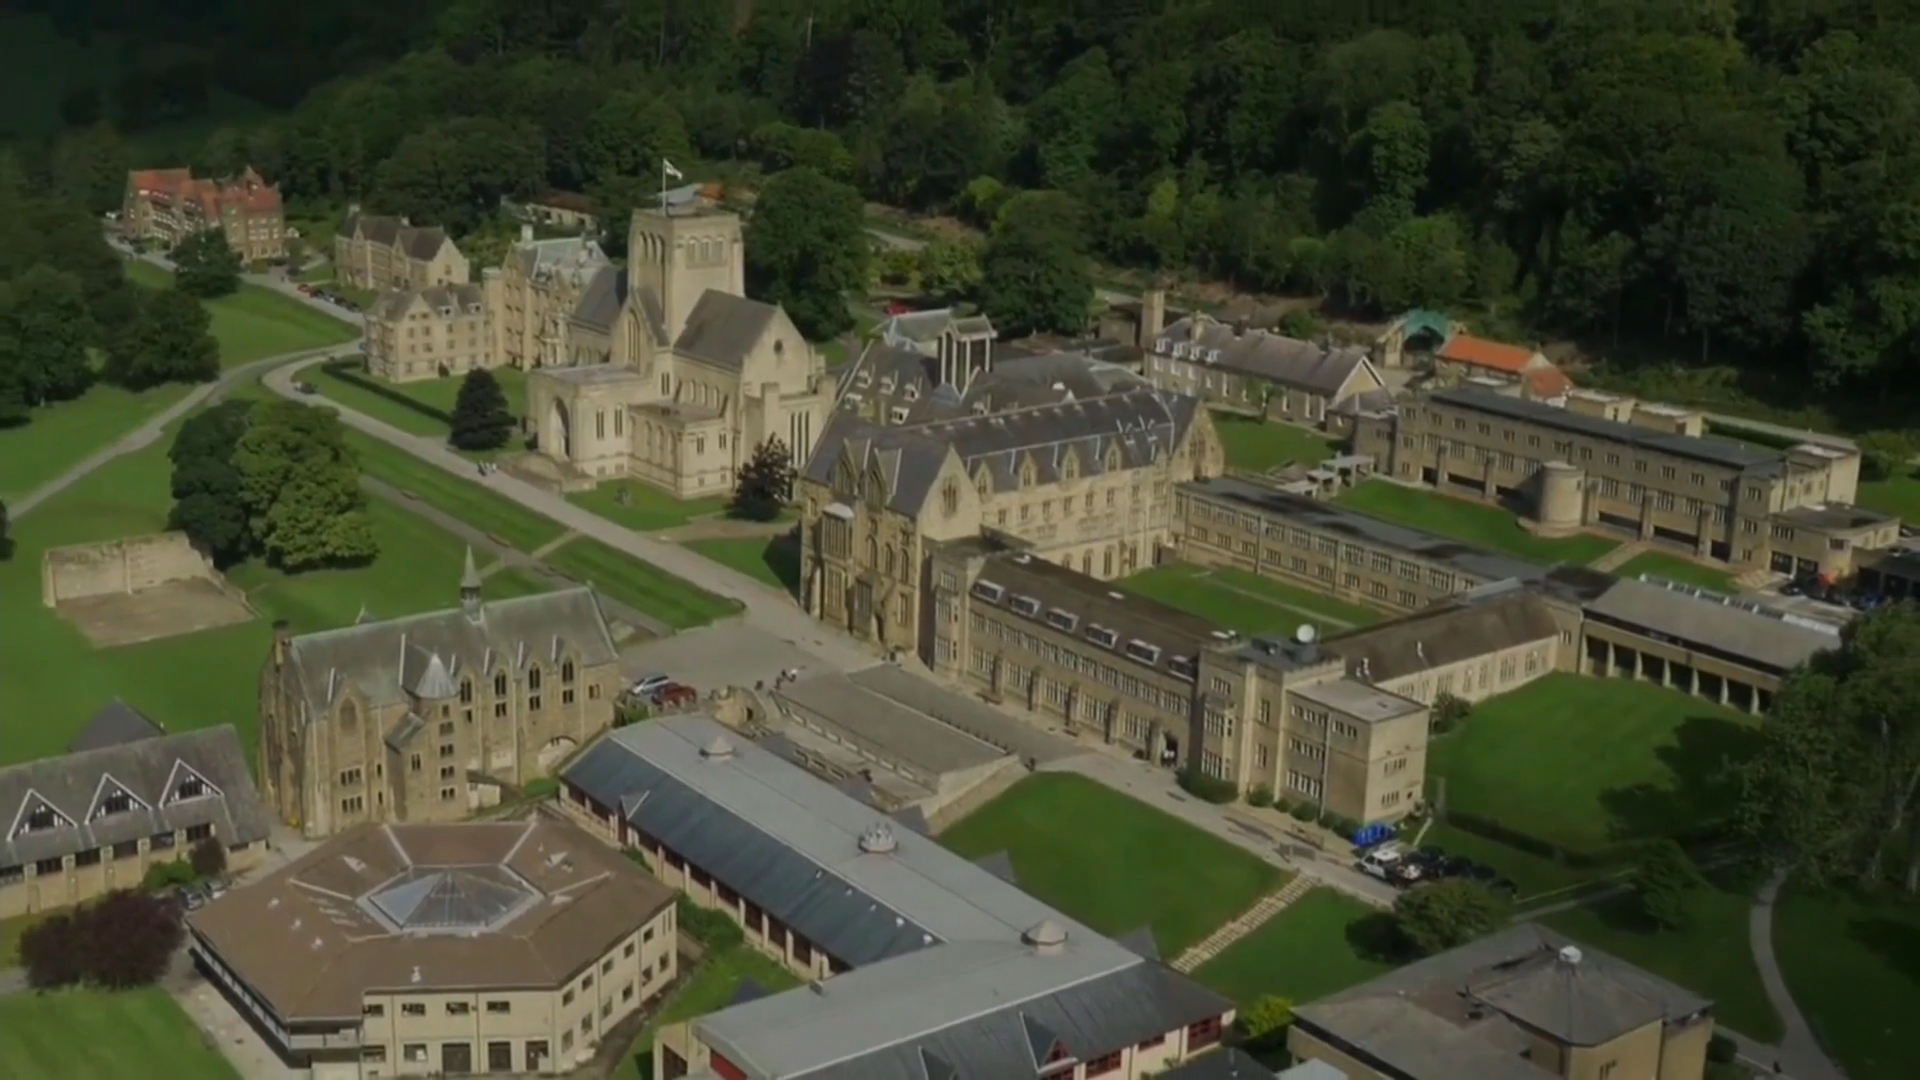 Ampleforth College faces questions over pupil safeguarding